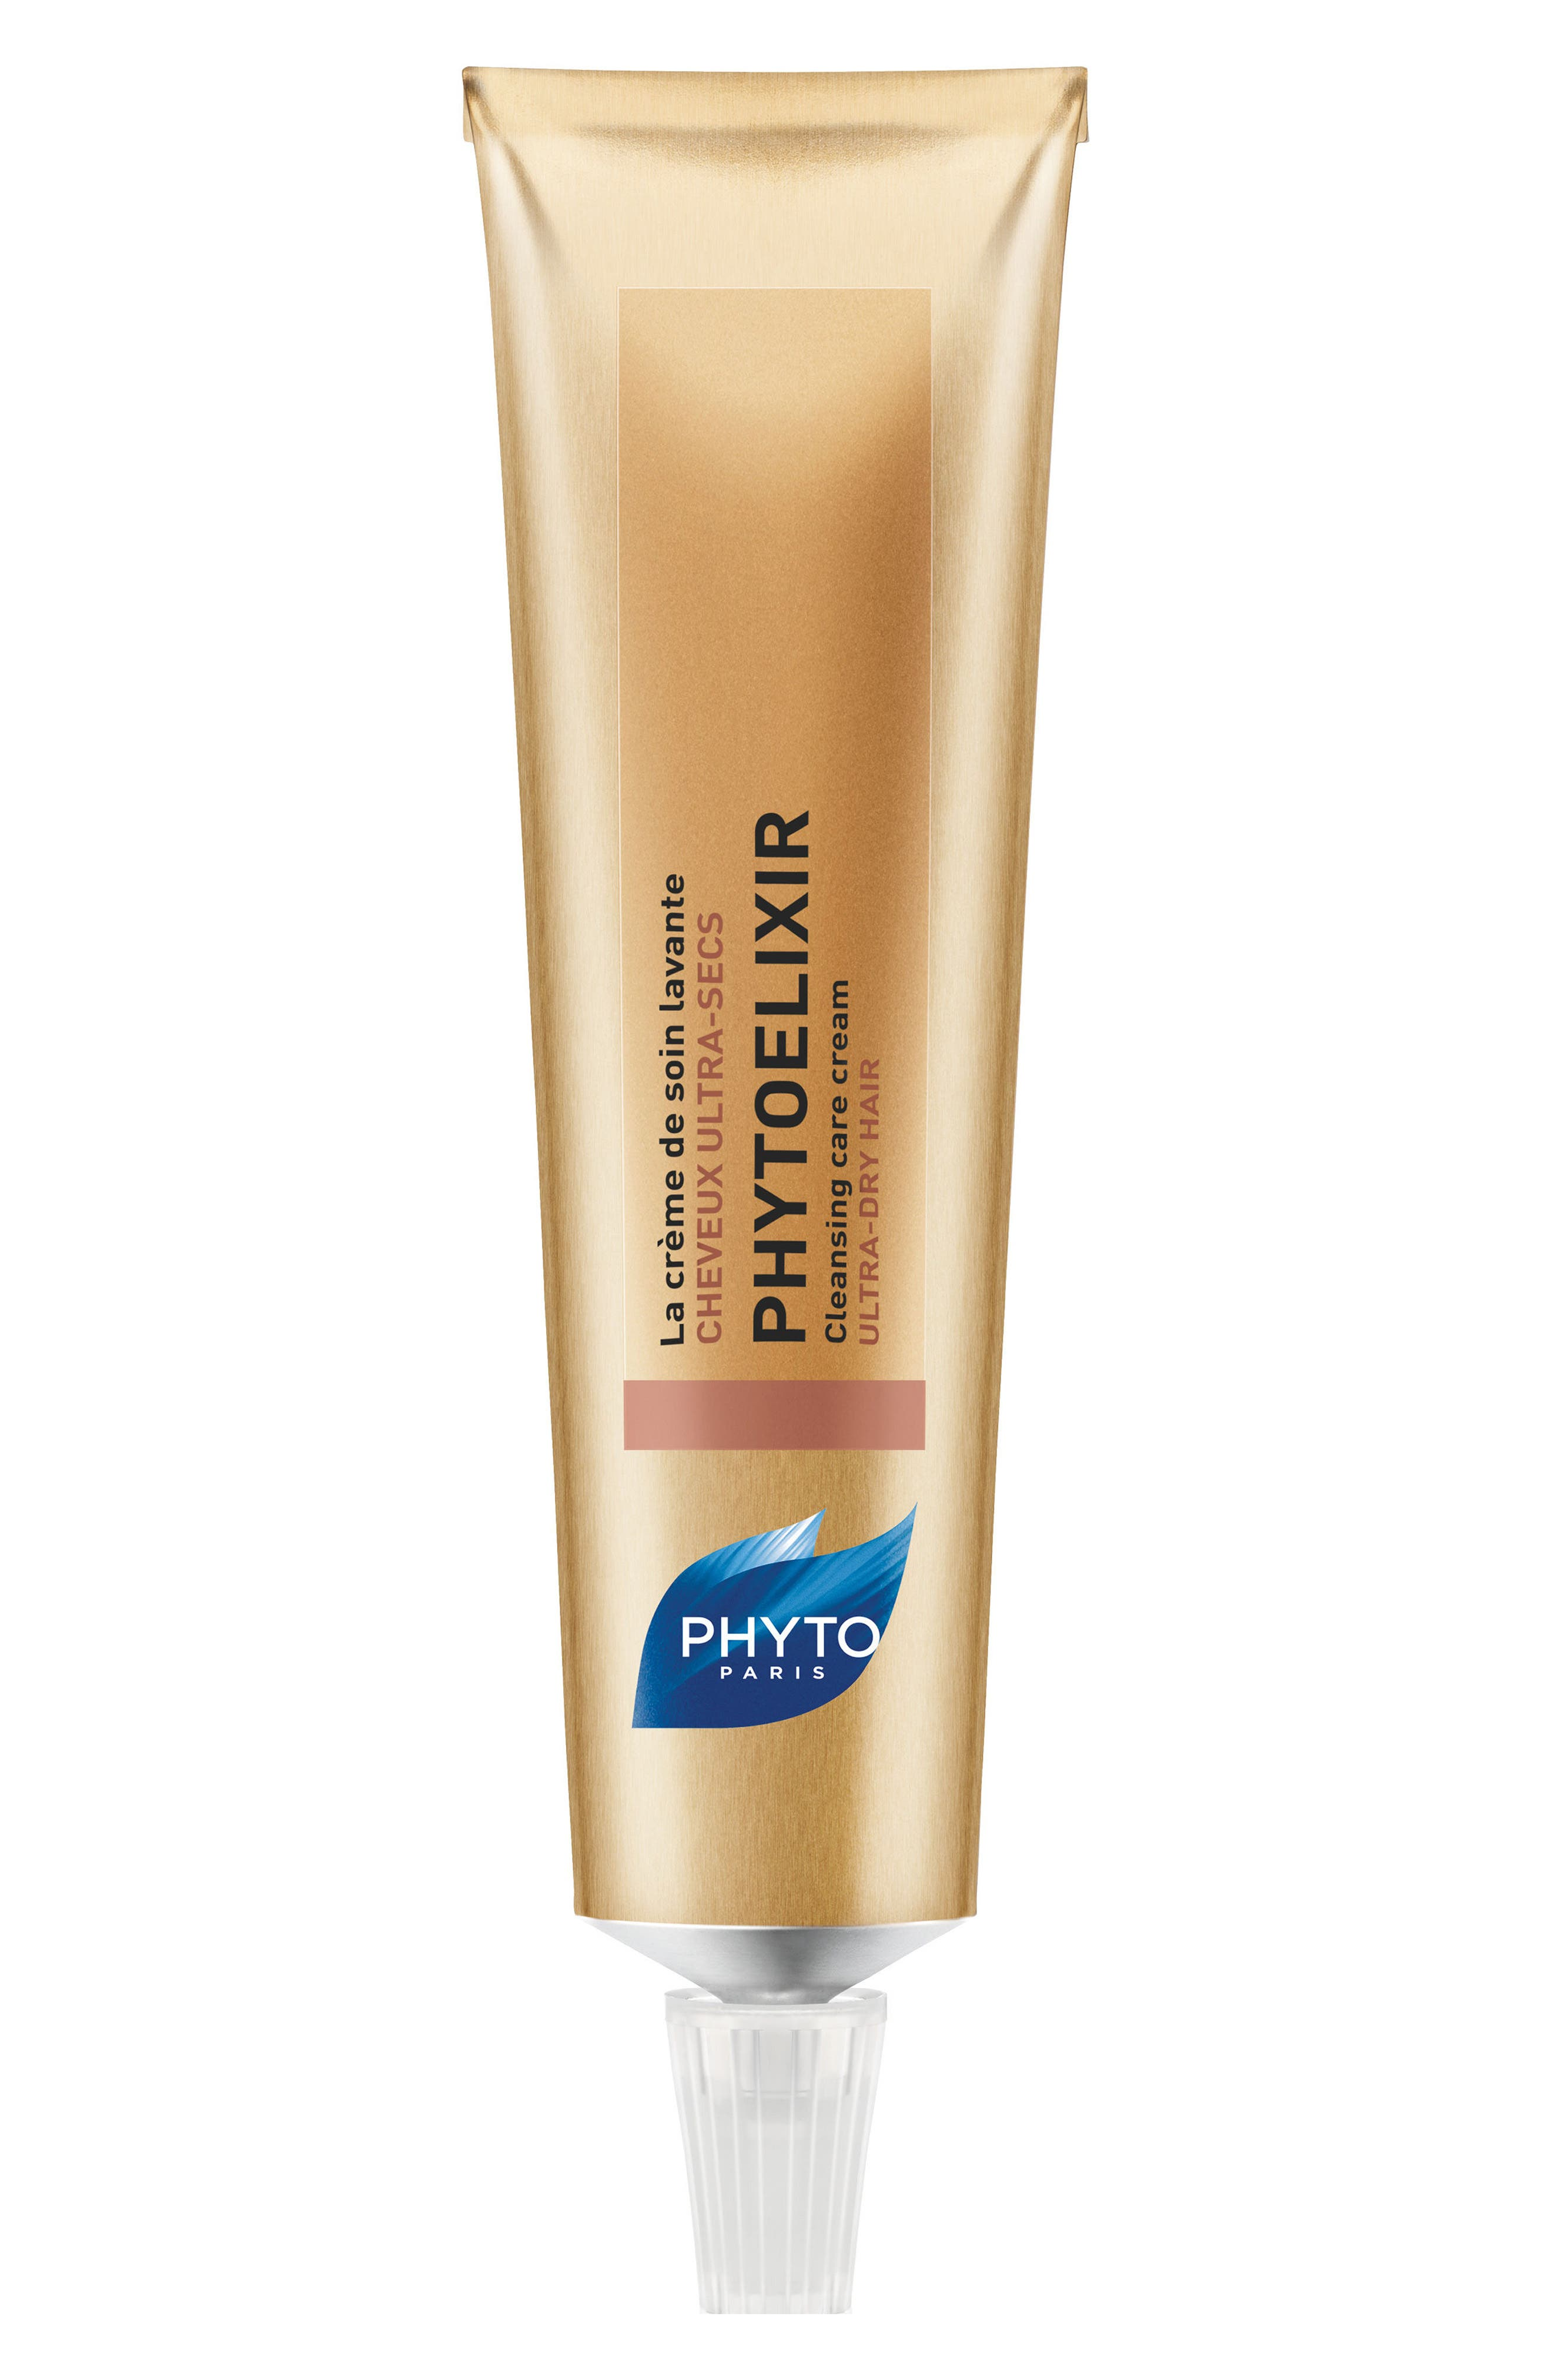 Alternate Image 1 Selected - PHYTO Phytoelixir Cleansing Care Cream